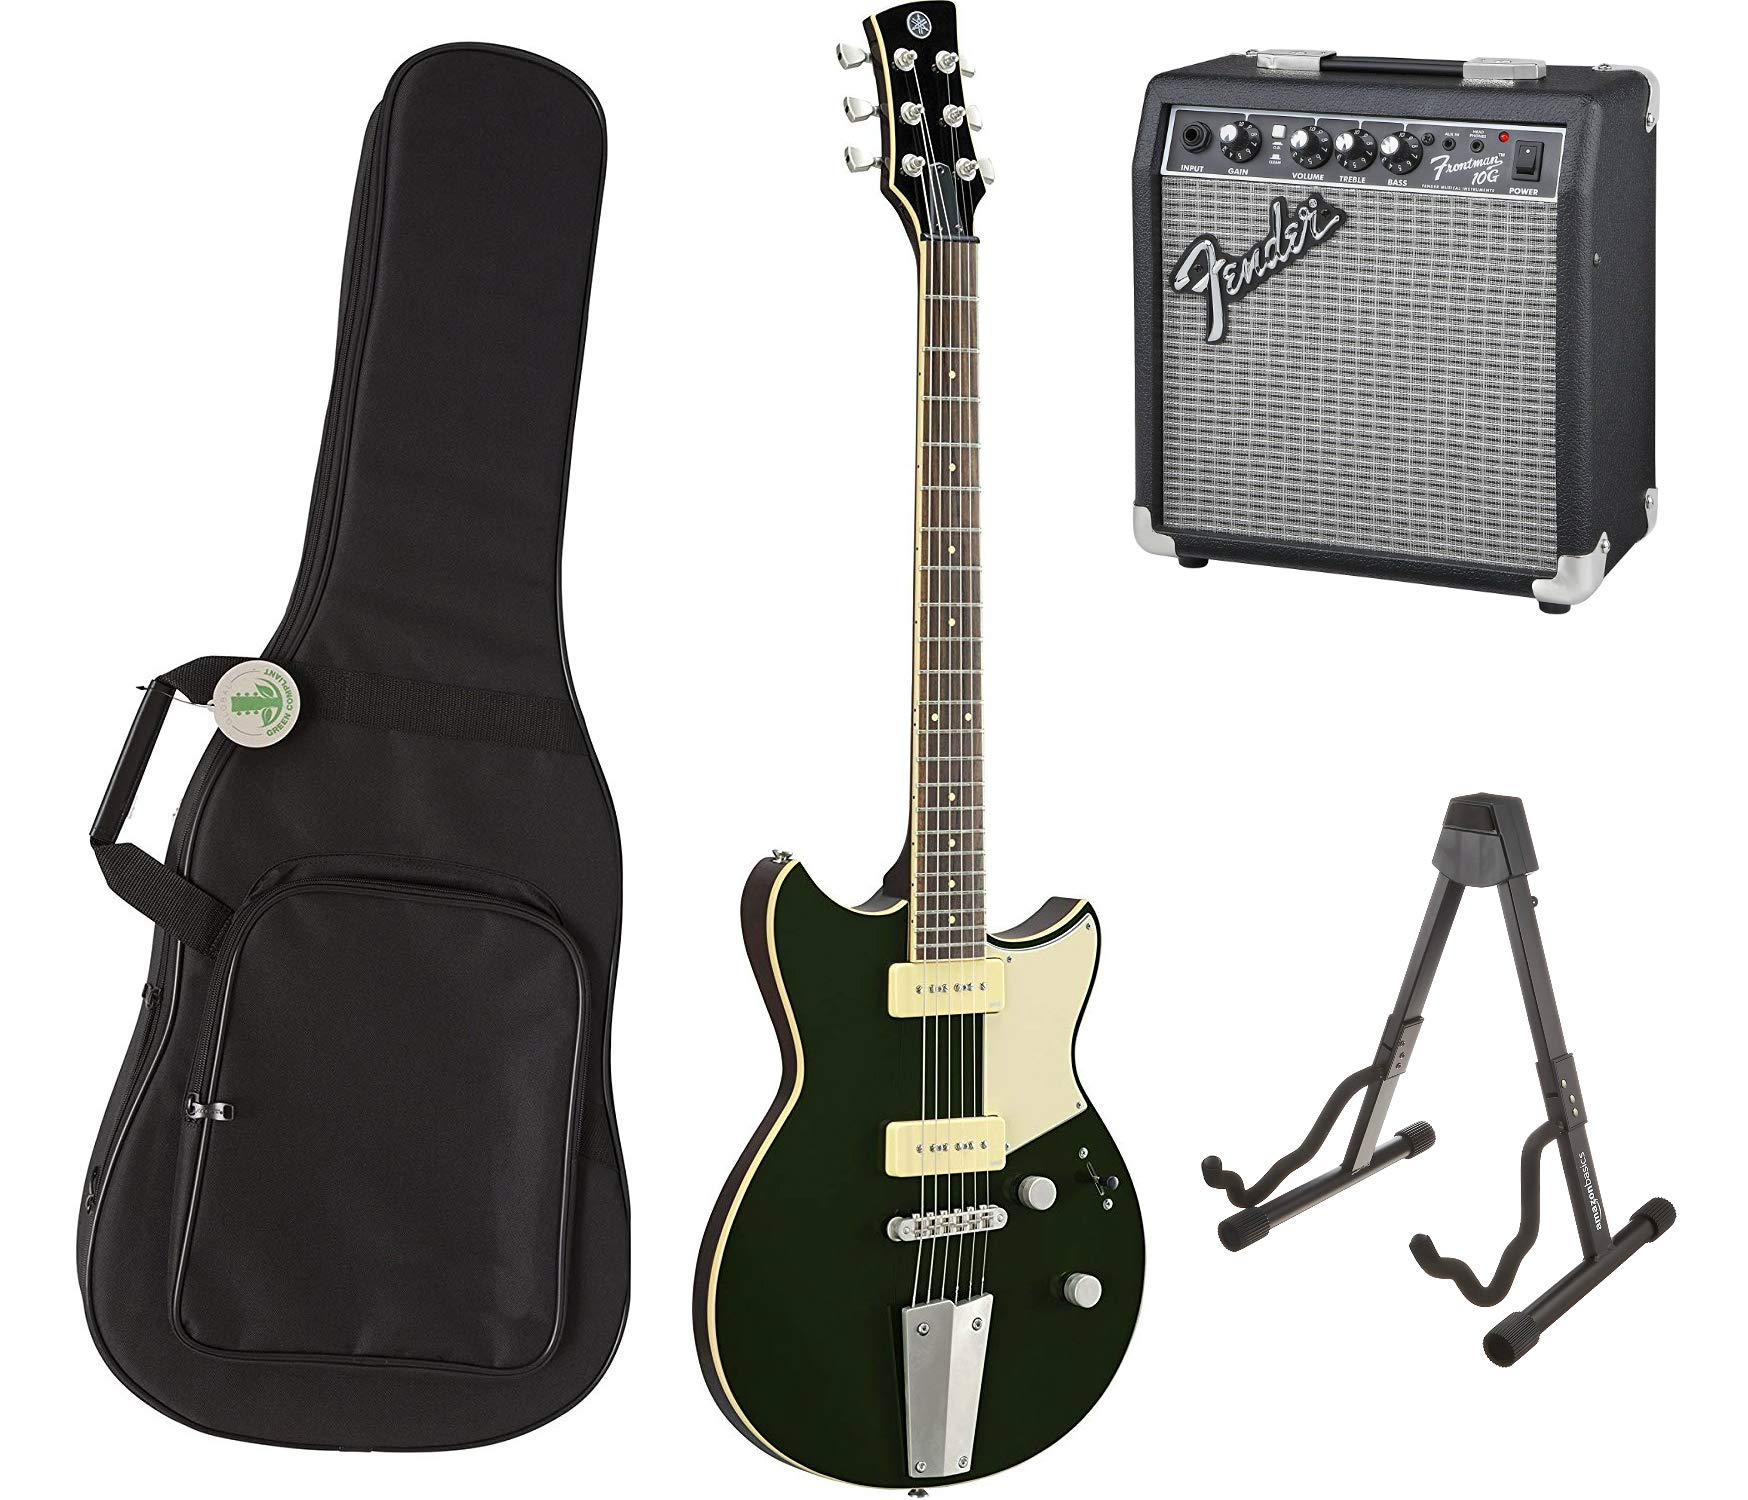 Cheap Yamaha Revstar RS502T BGR Solidbody Electric Guitar Bowden Green with Fender Frontman 10G Amplifier Gig Bag and Folding Guitar Stand Black Friday & Cyber Monday 2019